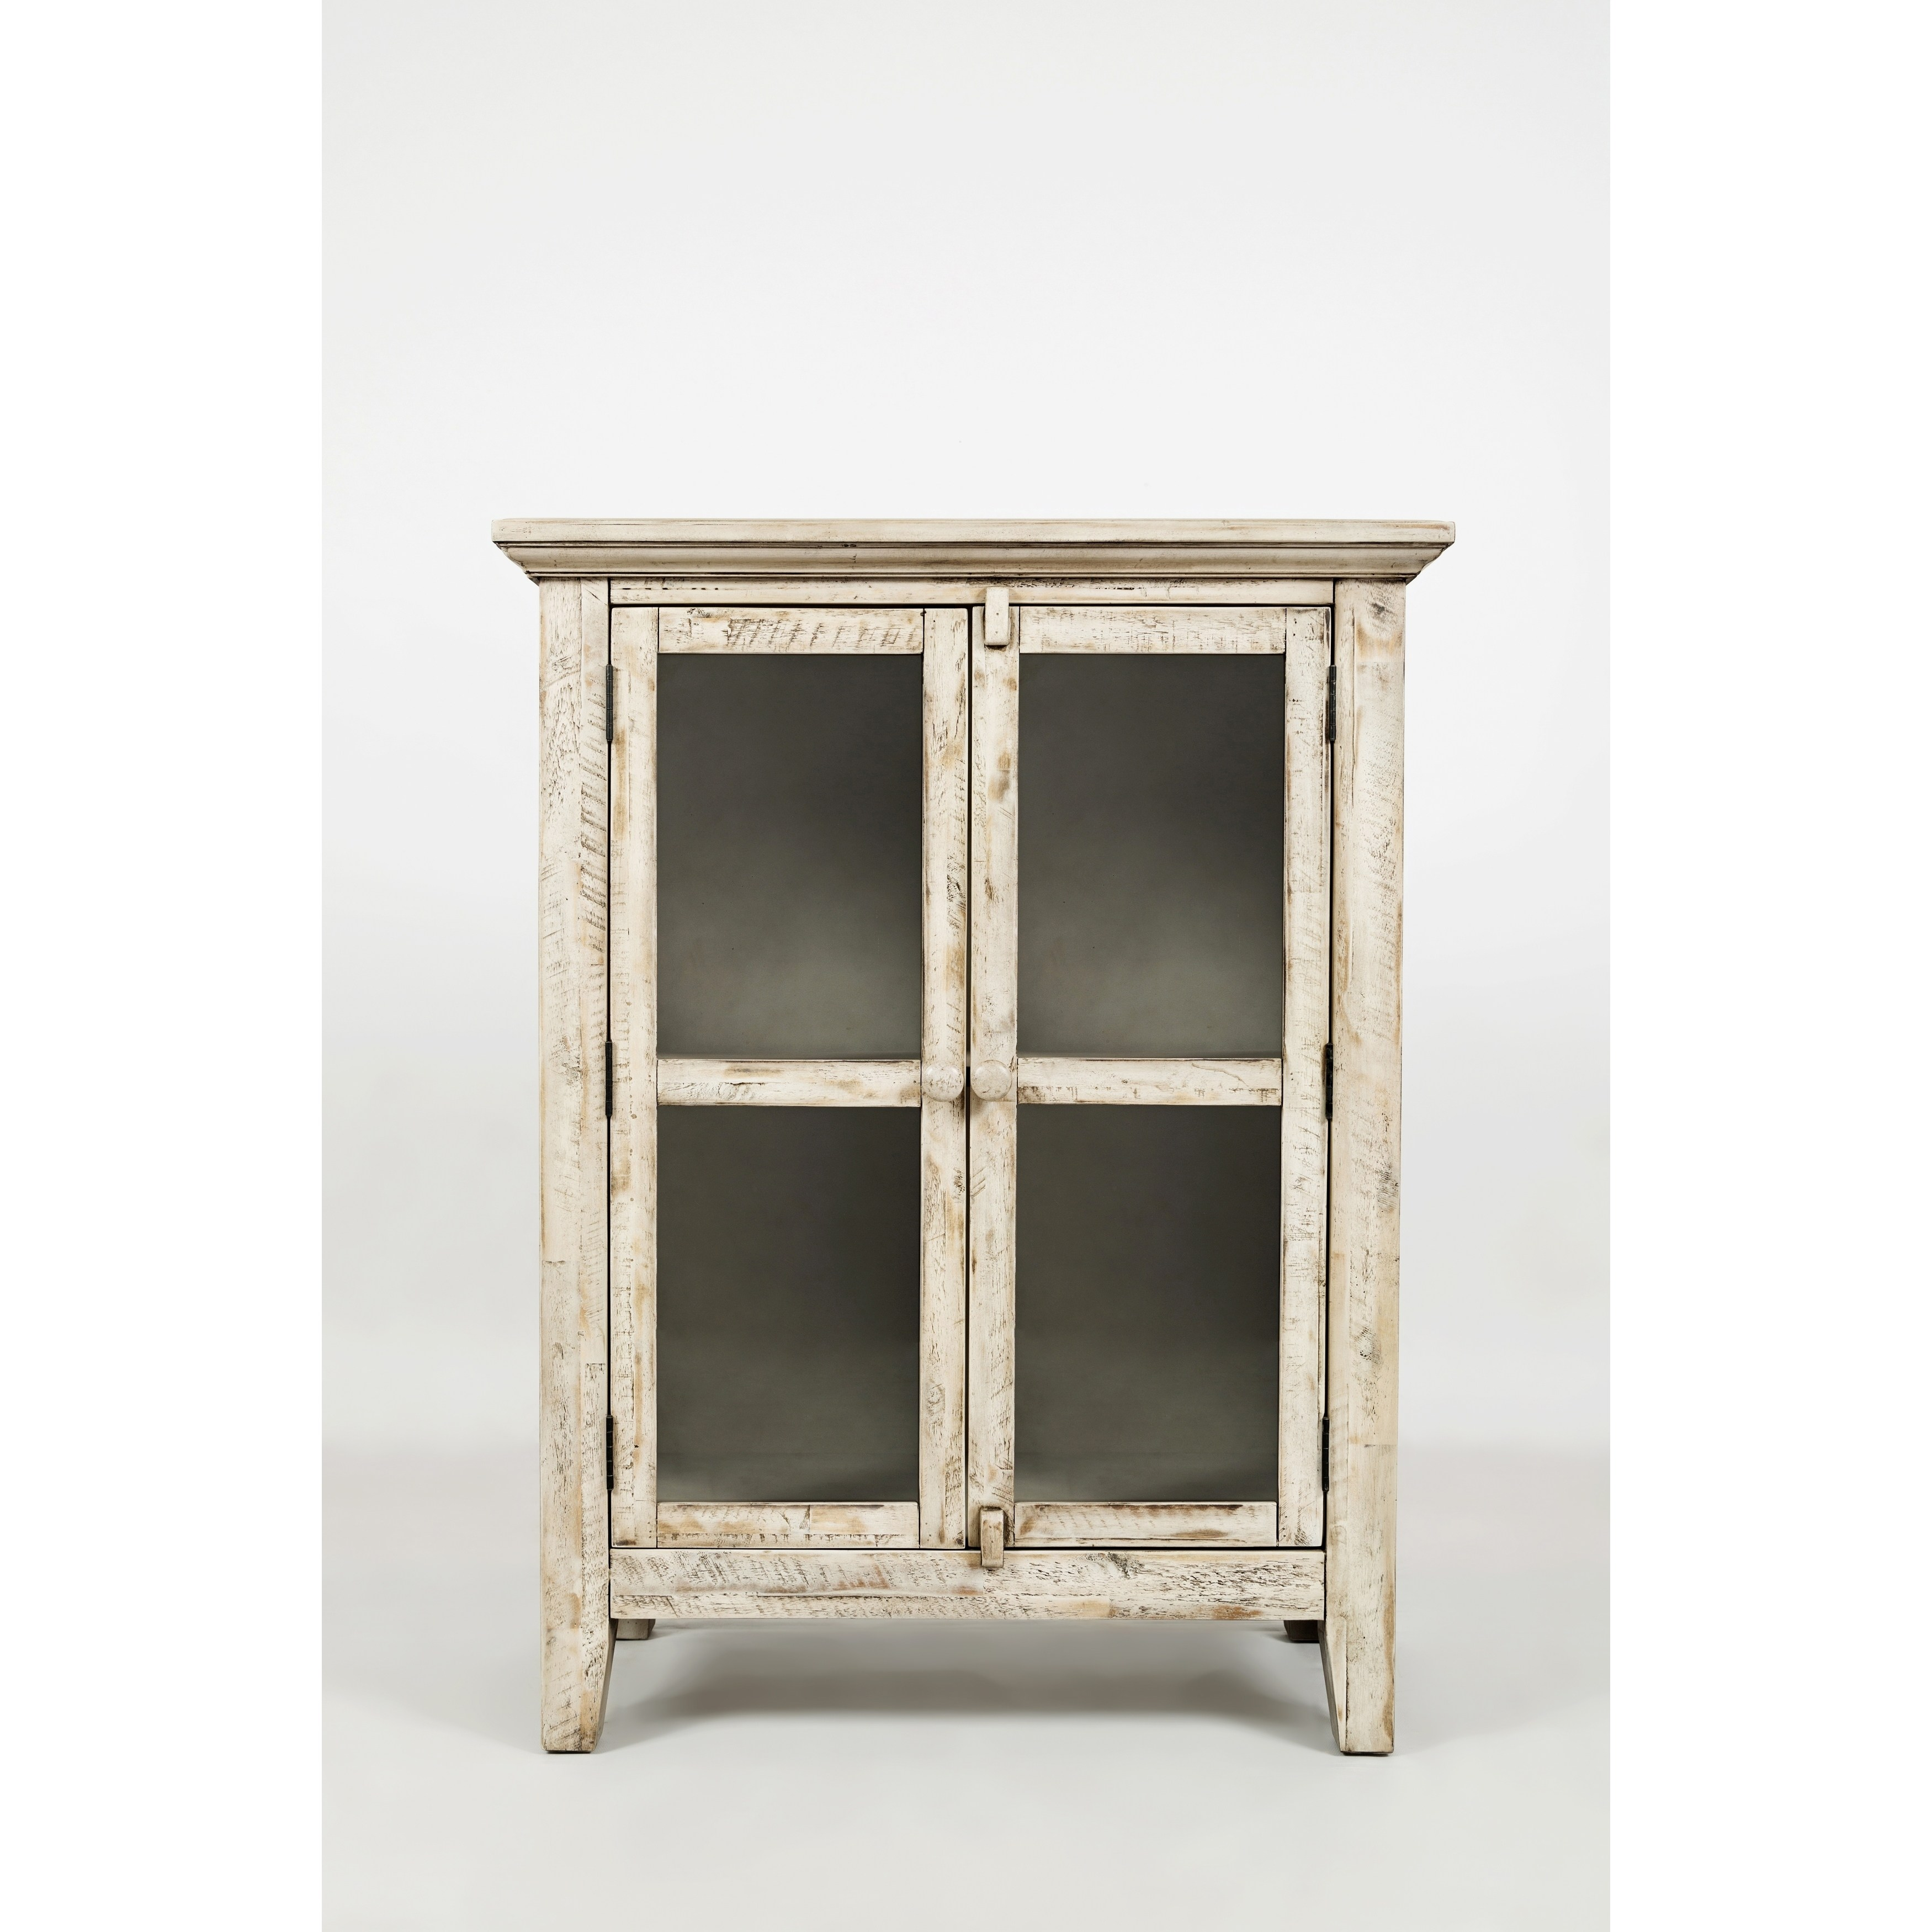 distressed wooden accent cabinet with glass doors off white table free shipping today end tables circular side wicker decorative cabinets for living room oak lamp patio furniture